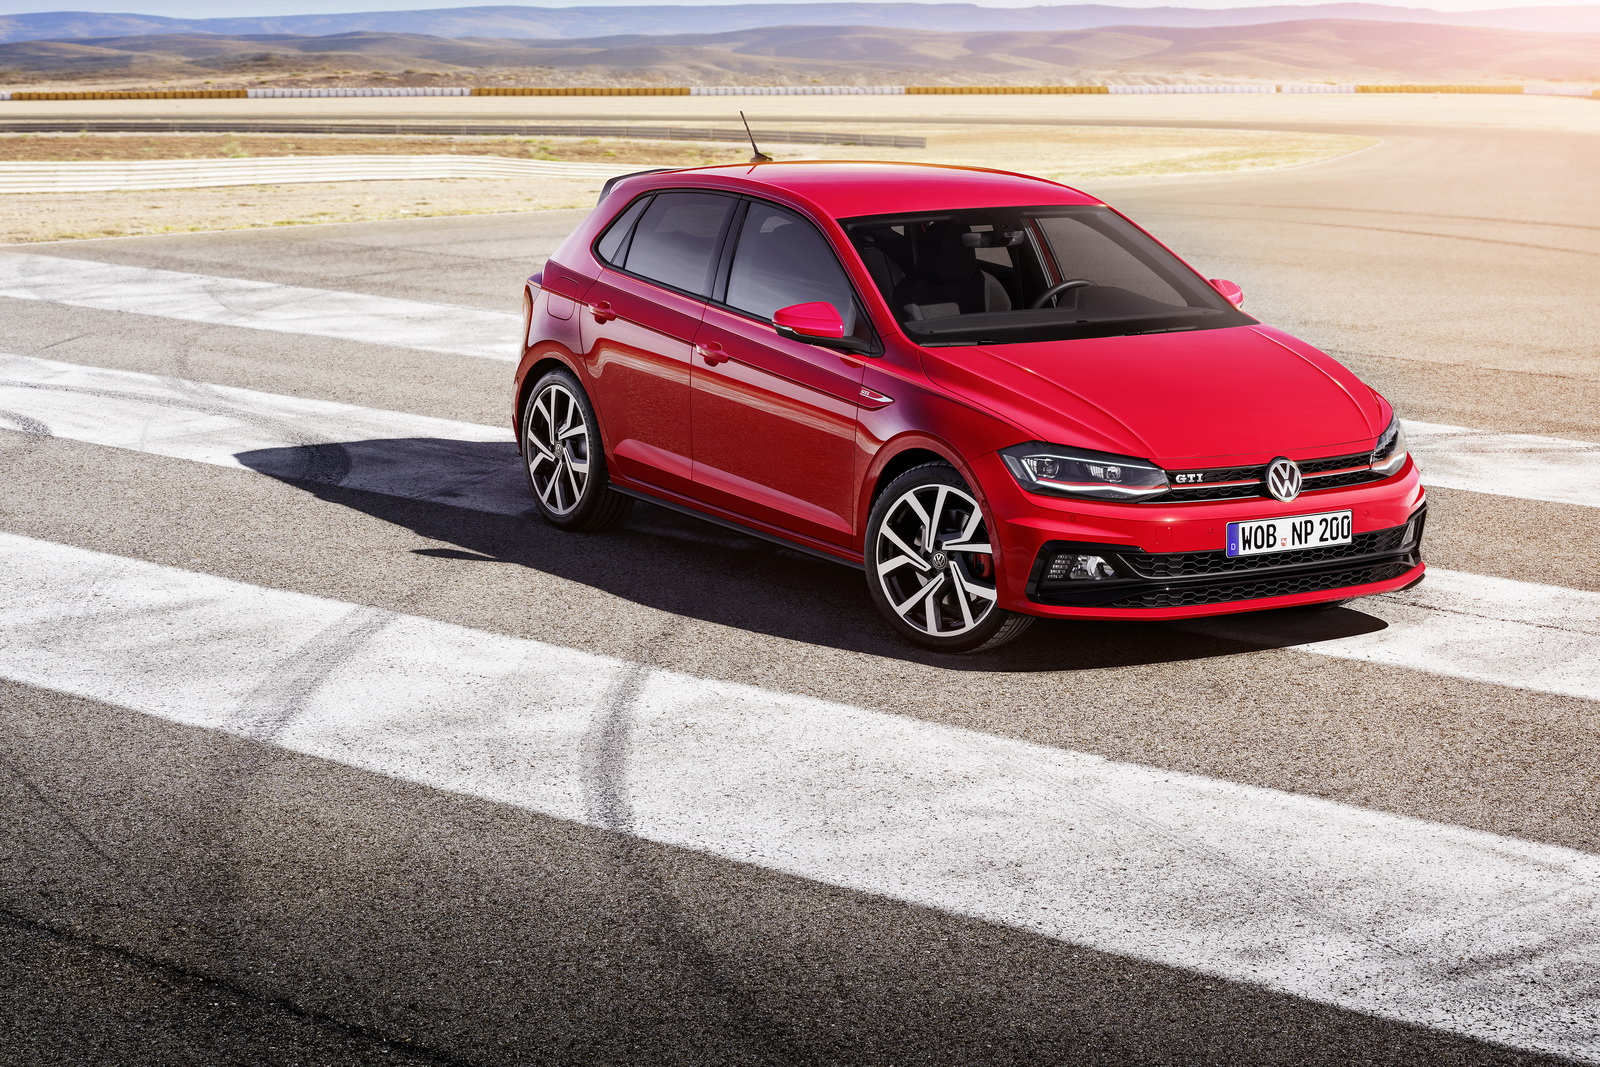 Volkswagen Polo and Polo GTI 2018 (42)